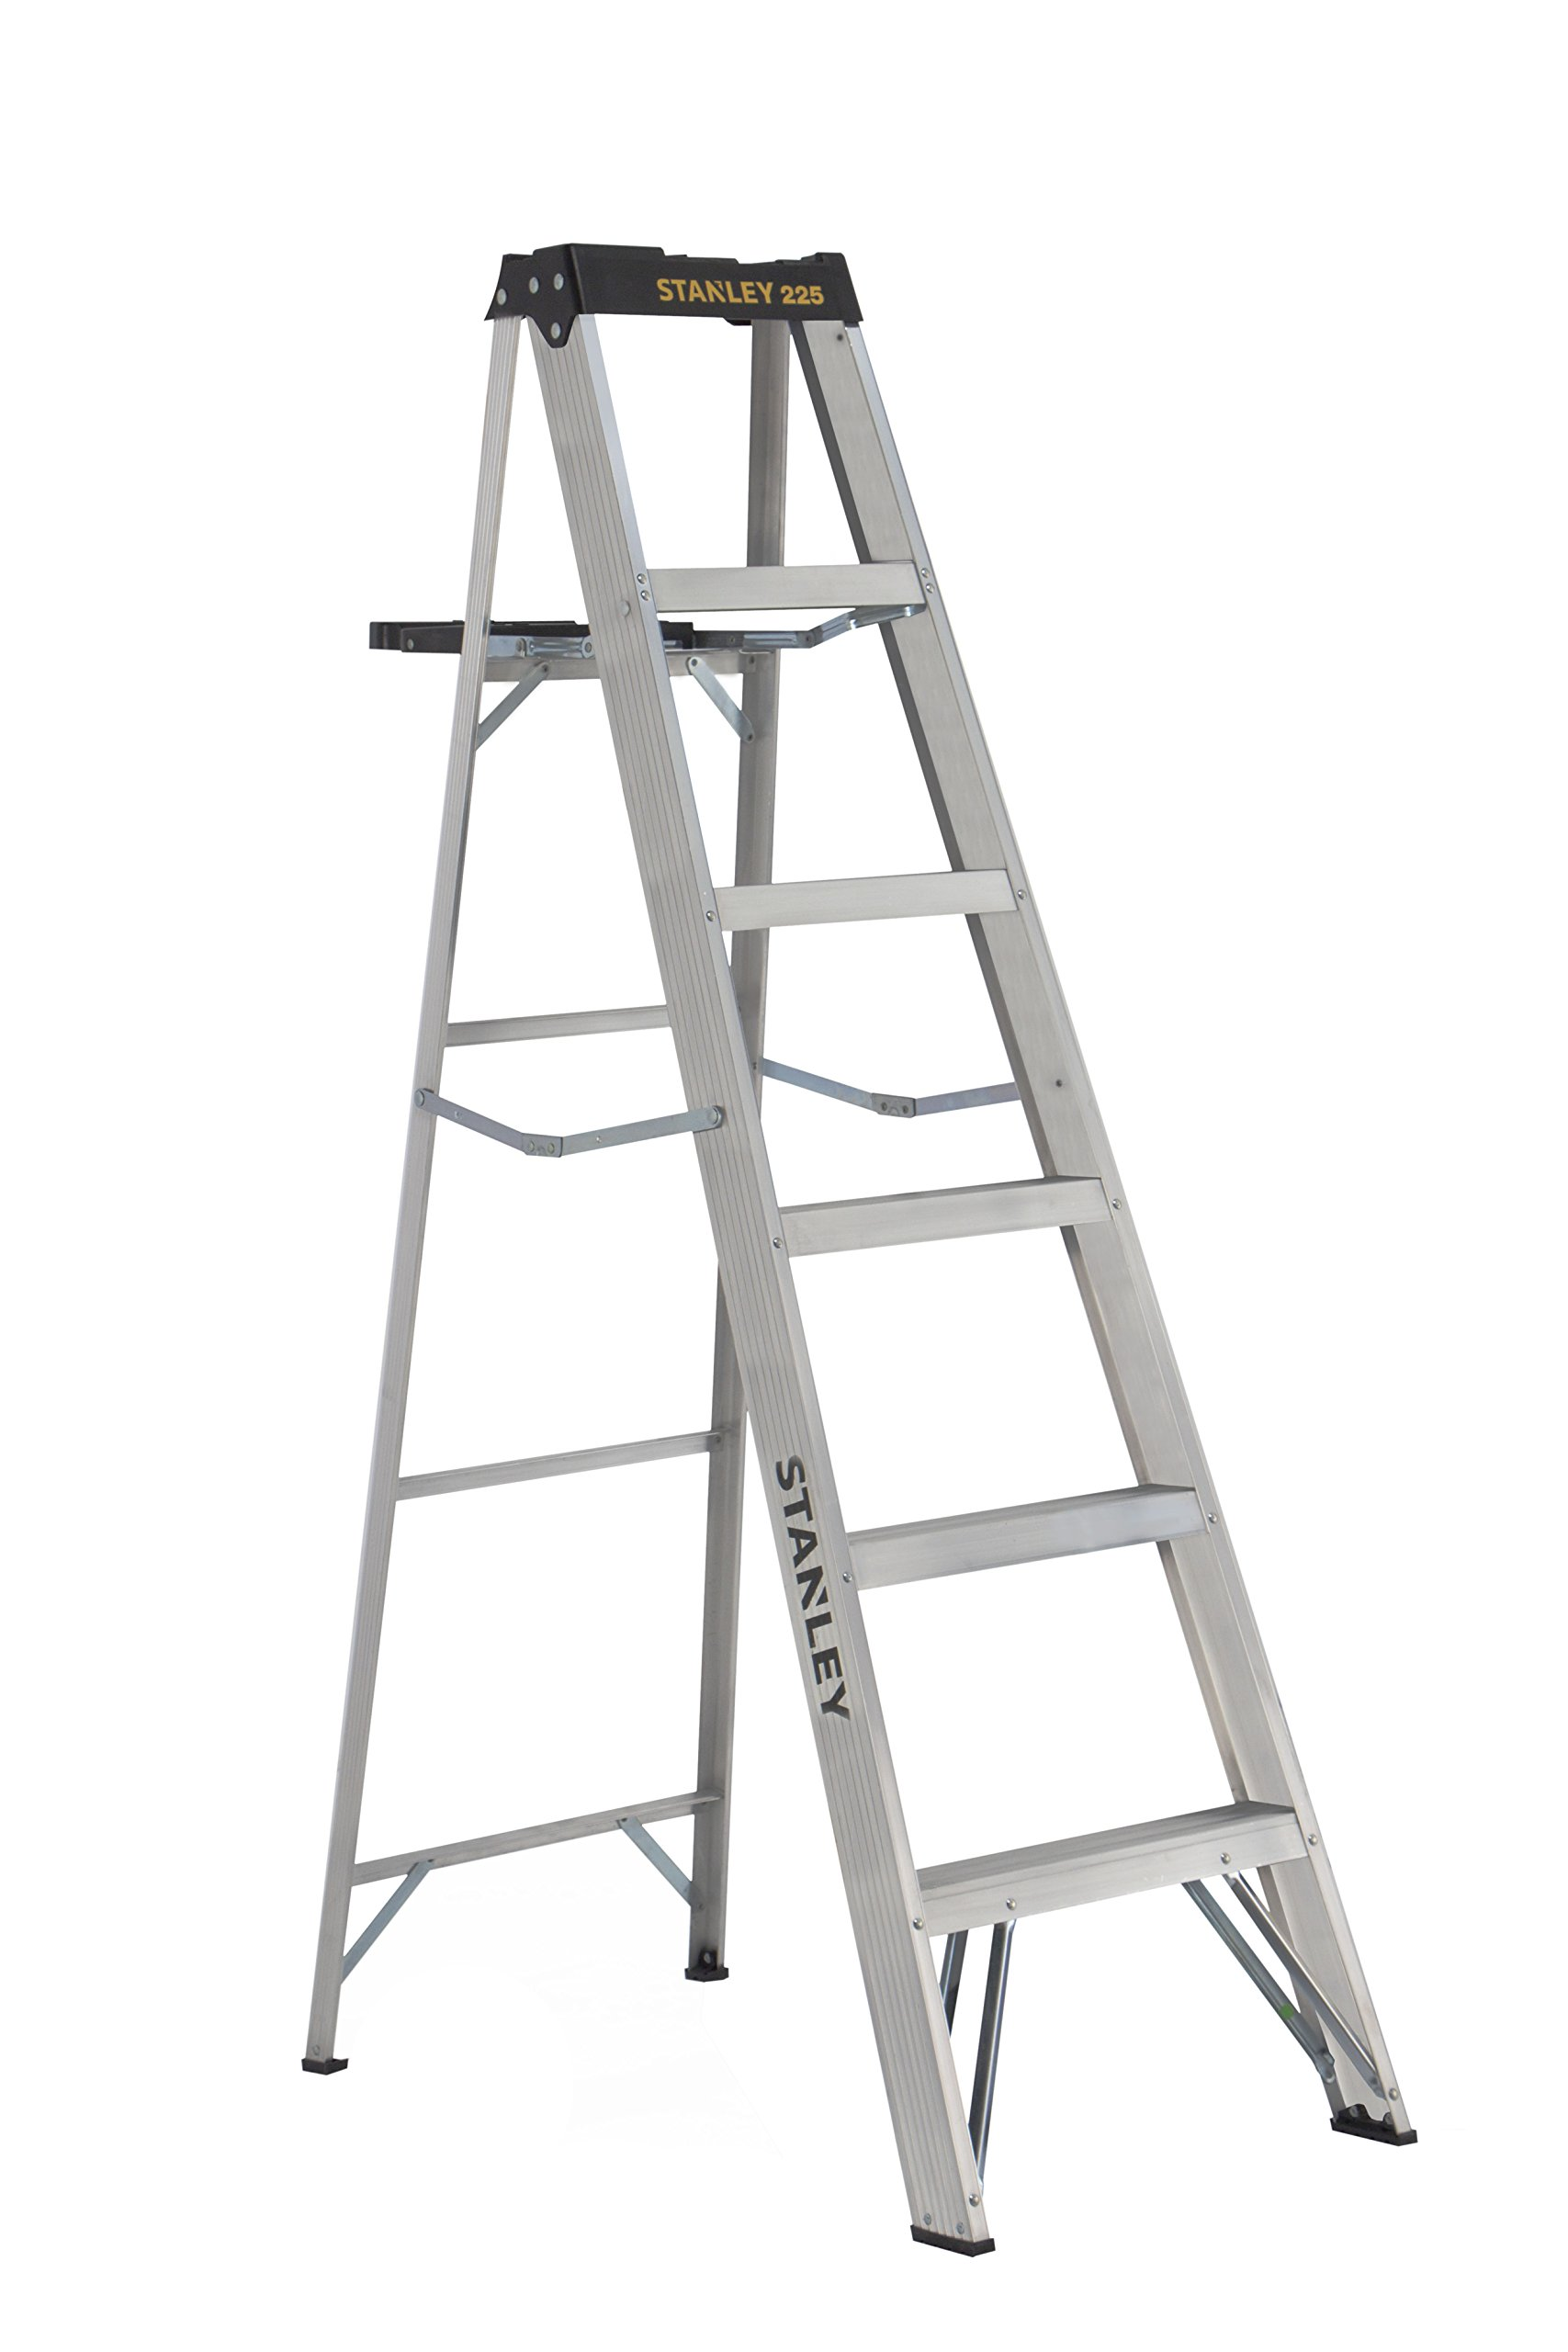 Stanley SXL2212-06 Aluminum Step Ladder Type II, 225 lb Load Capacity 6' with Multi-Functional Top